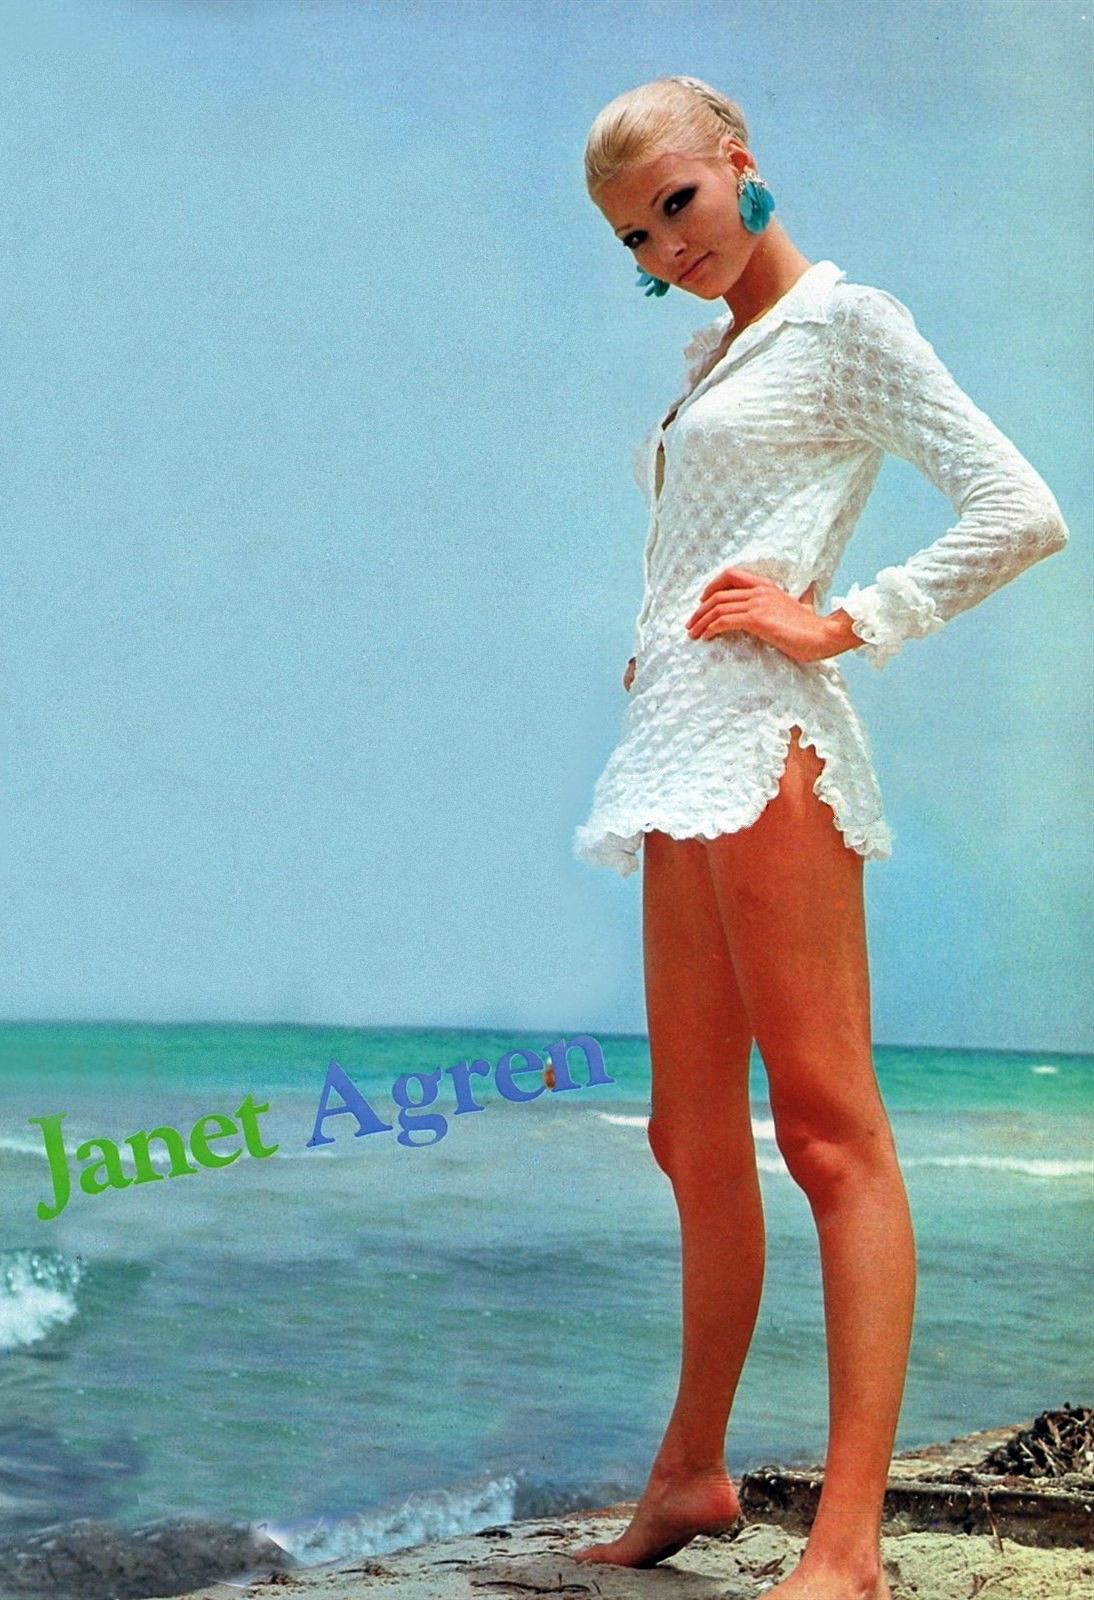 Janet Agren (born 1949 (Swedish actress who mainly worked in Italy)